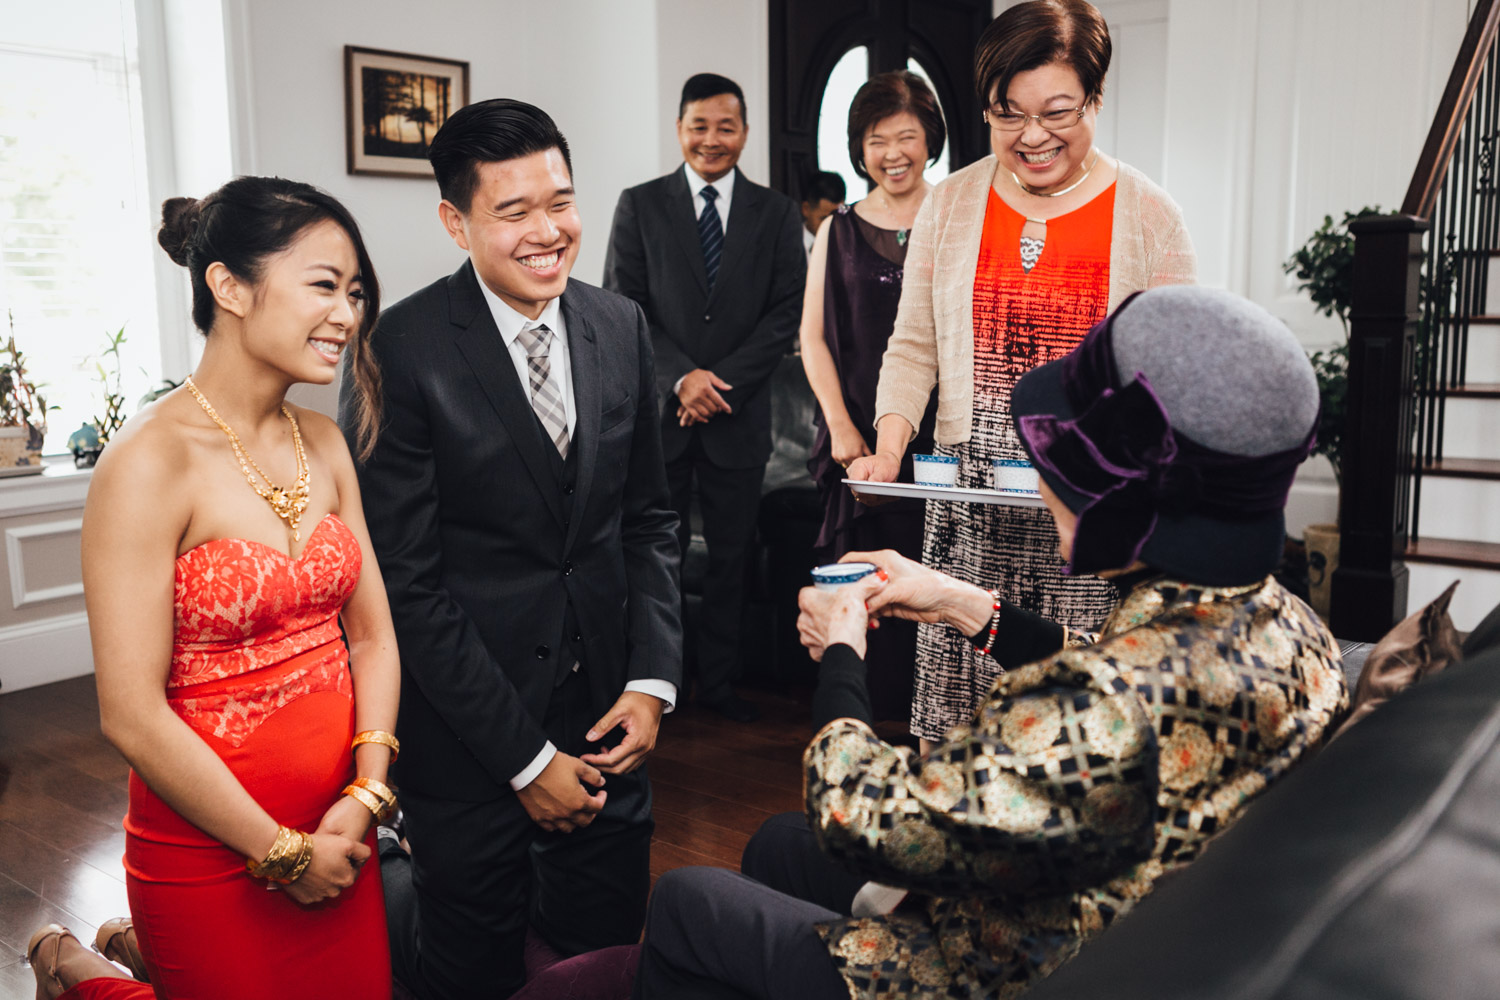 chinese tea ceremony tradition vancouver wedding photography